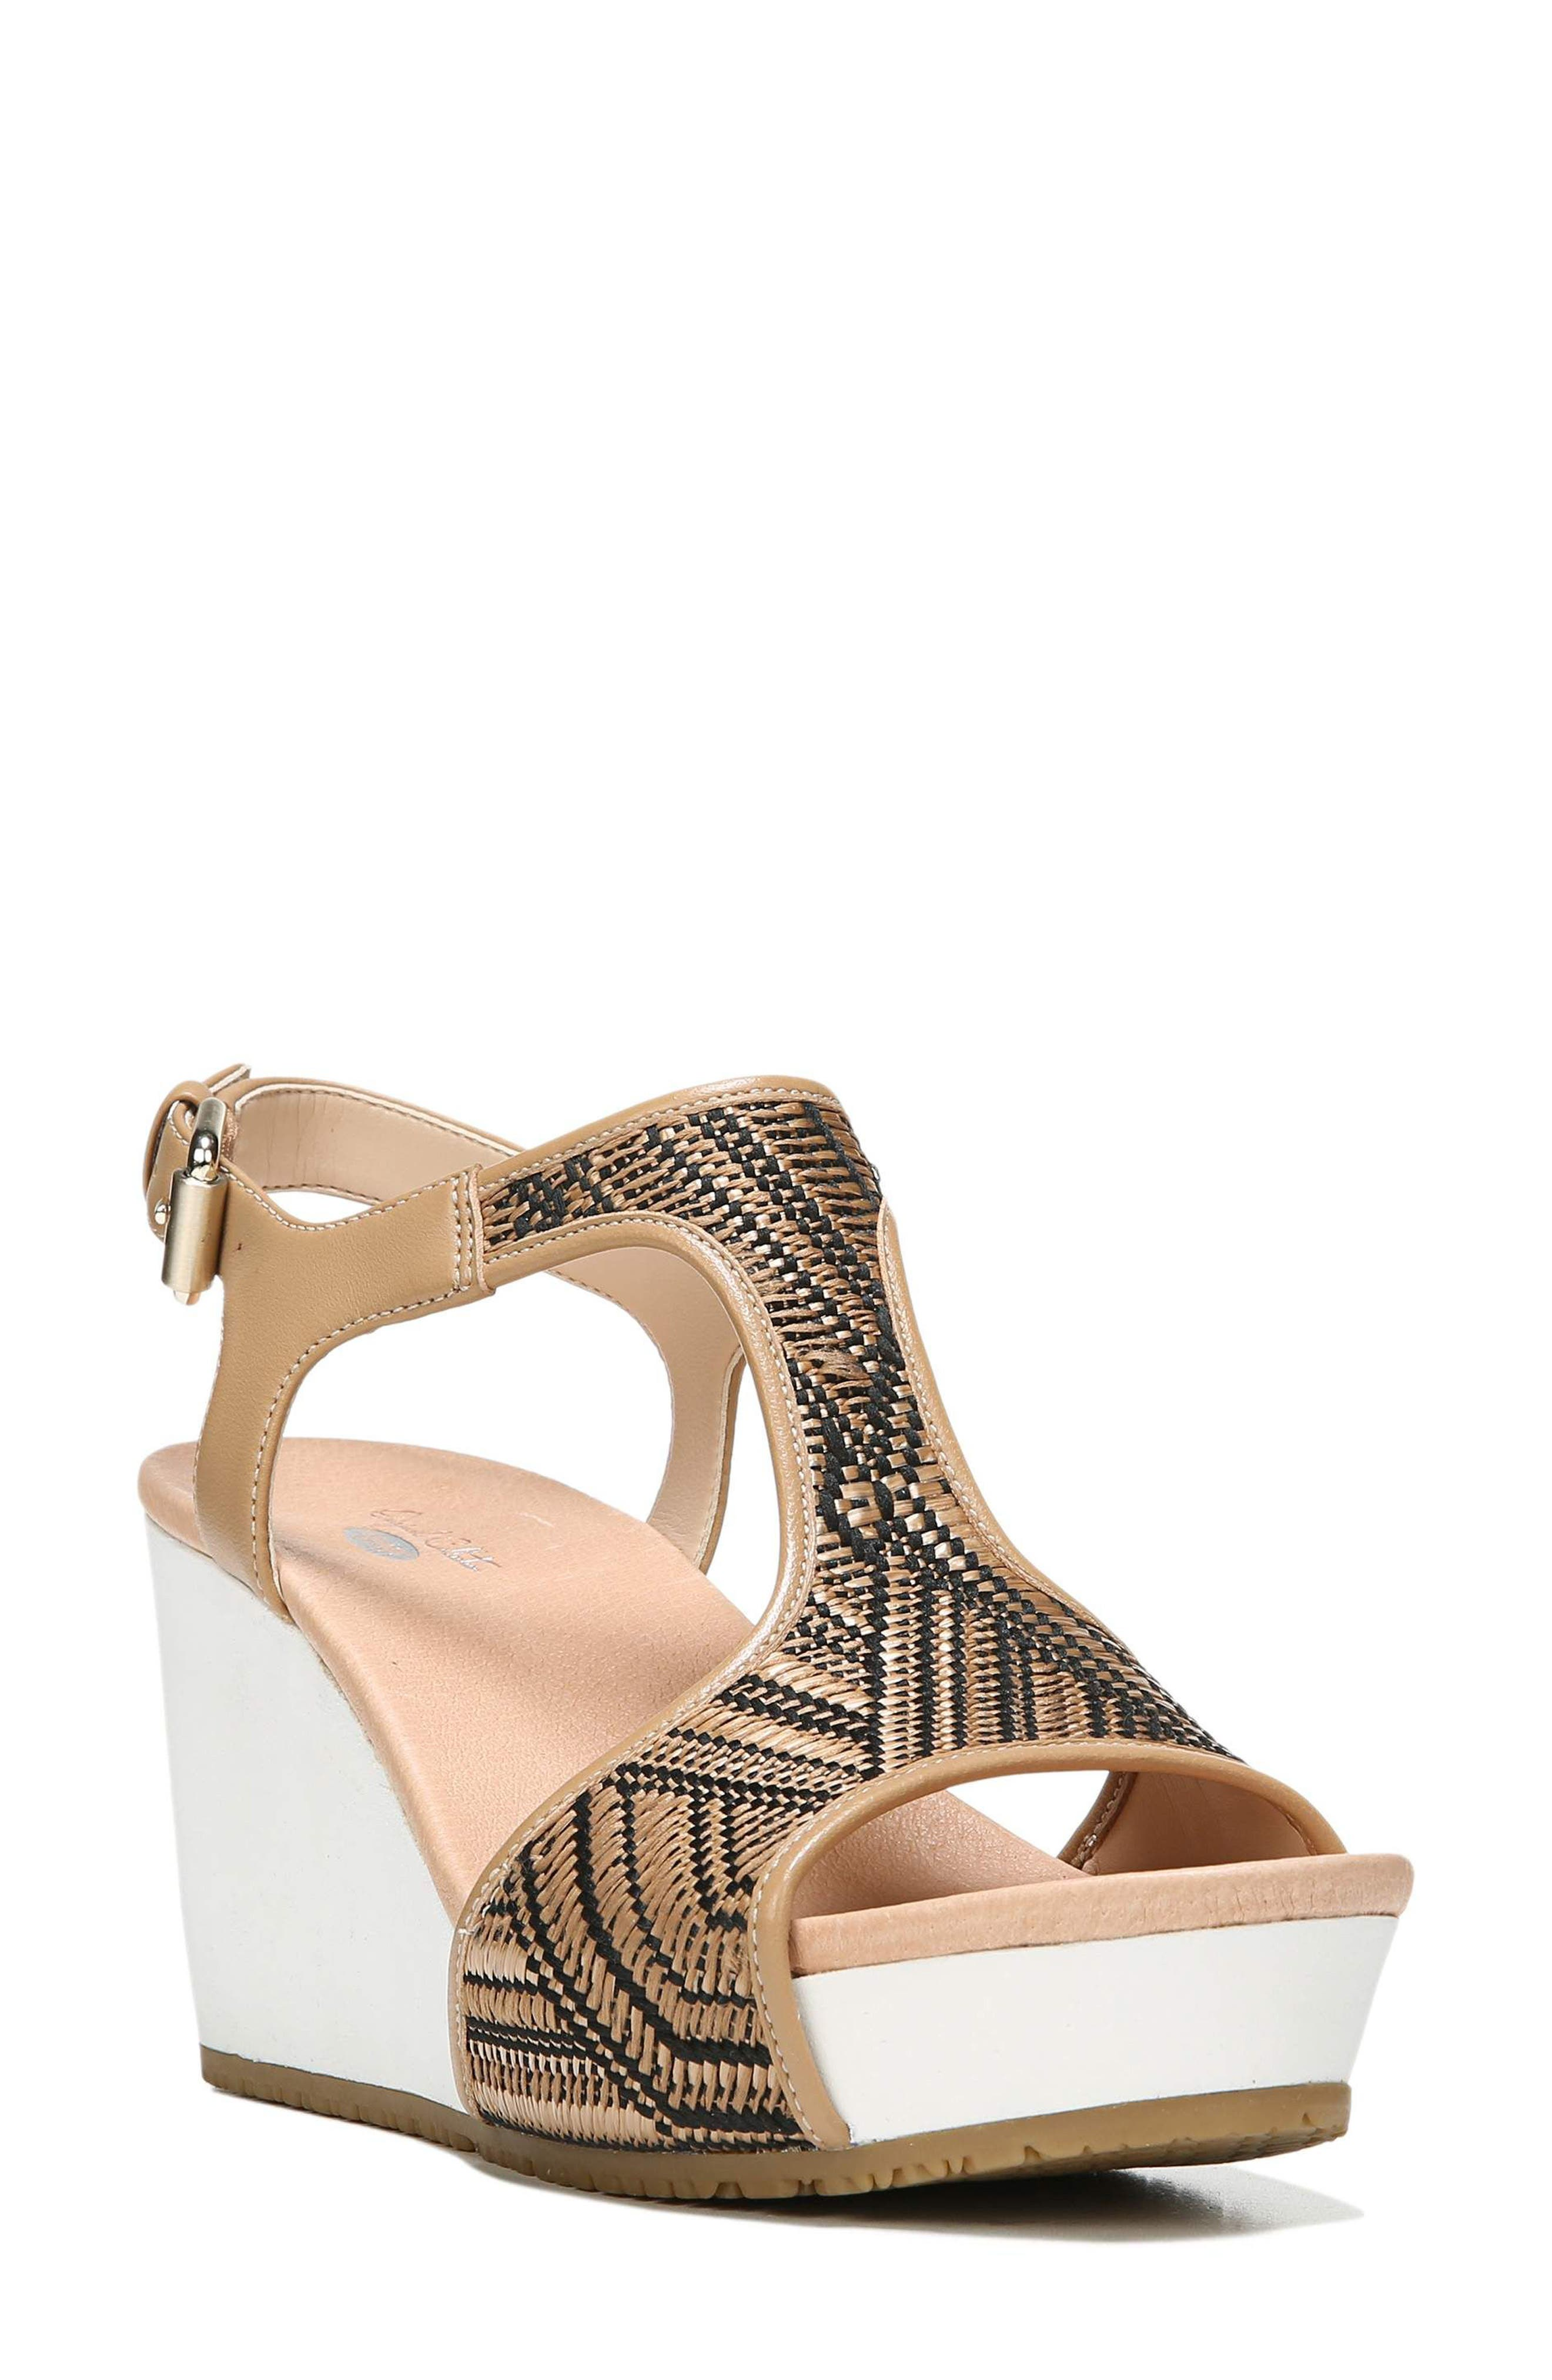 'Original Collection Wiley' Wedge Sandal,                             Main thumbnail 1, color,                             NUDE